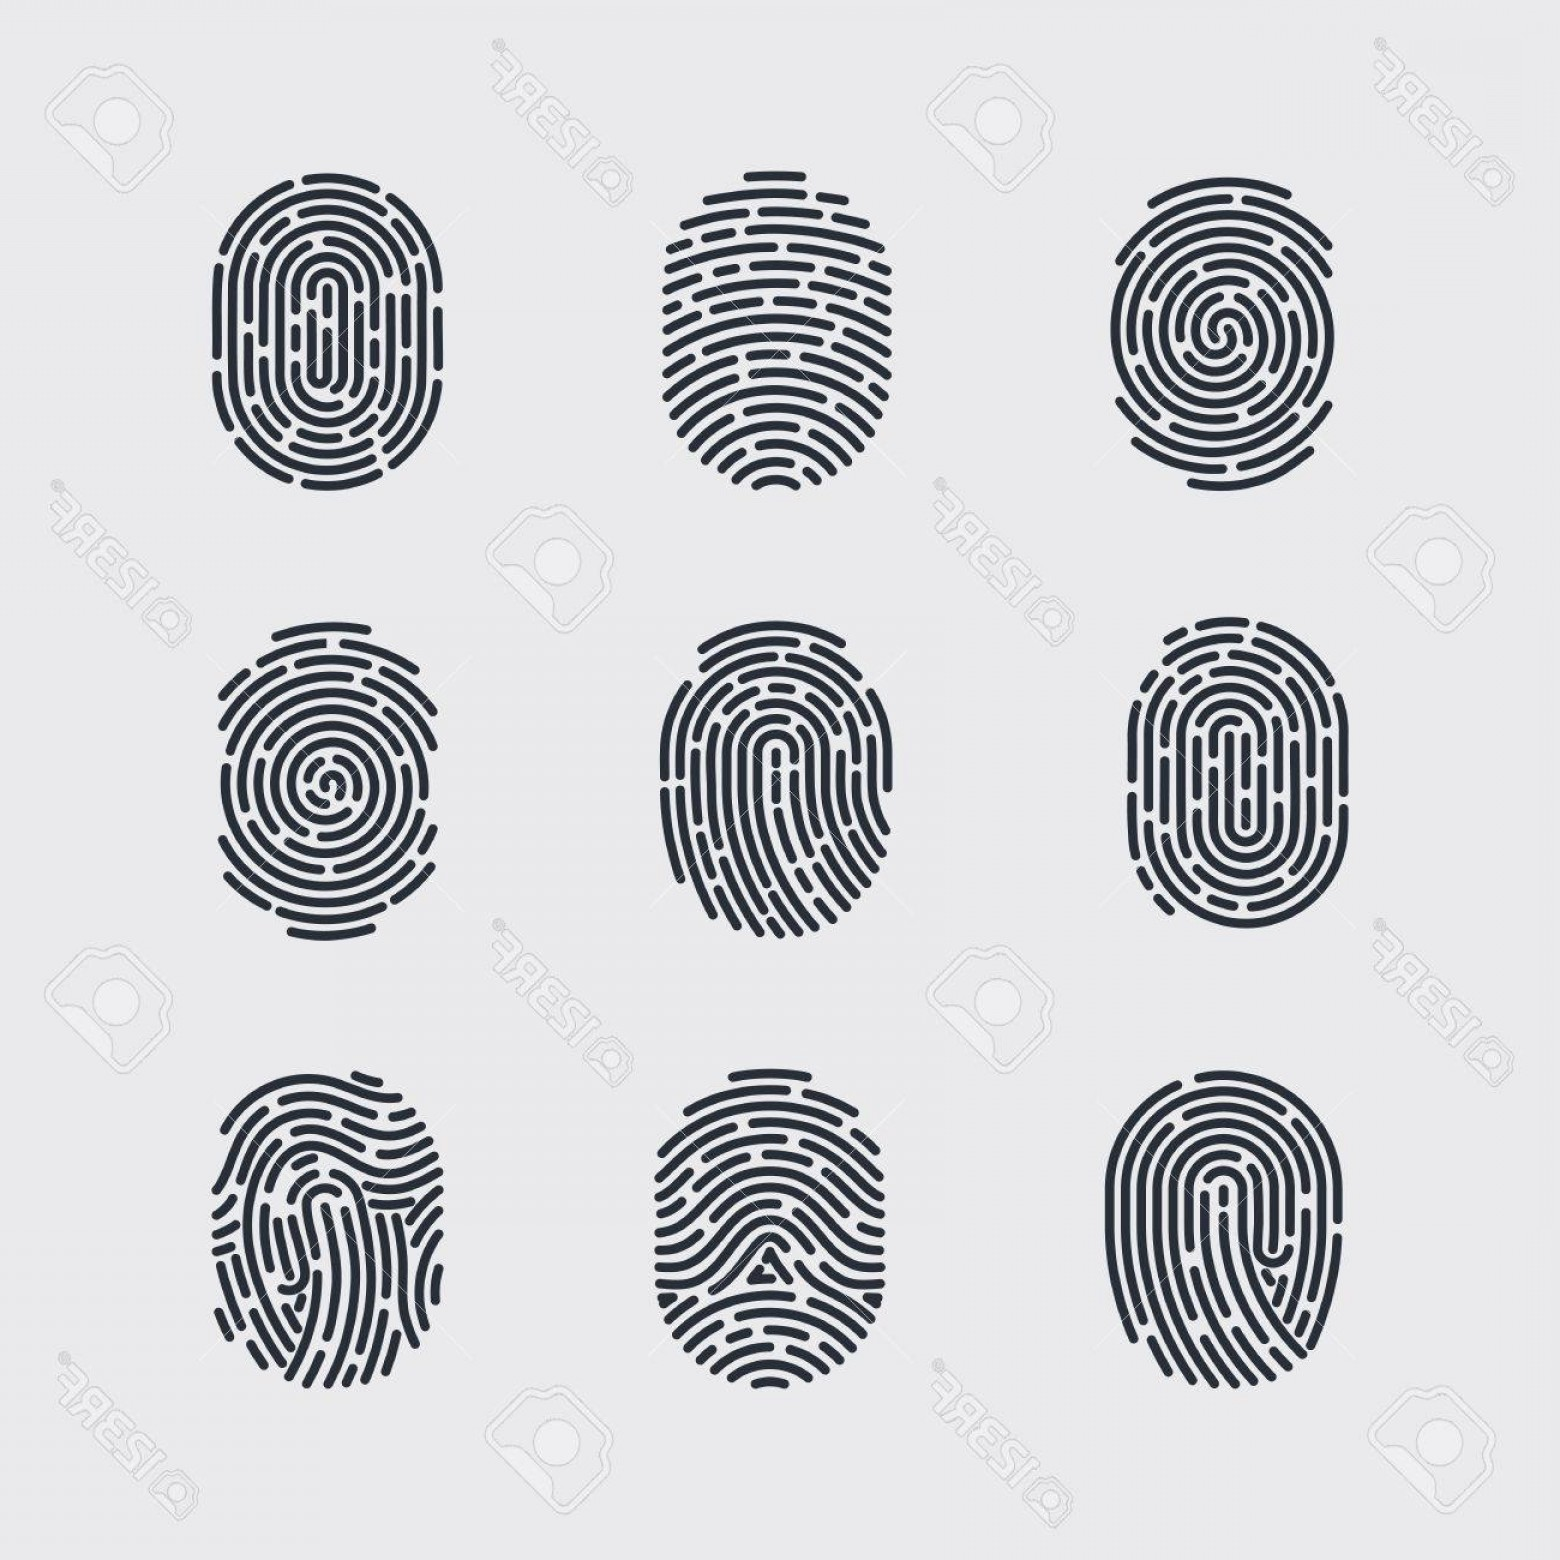 Security Vector Patterns: Photostock Vector Types Of Fingerprint Patterns For Identity Person Security Id On Gray For Design